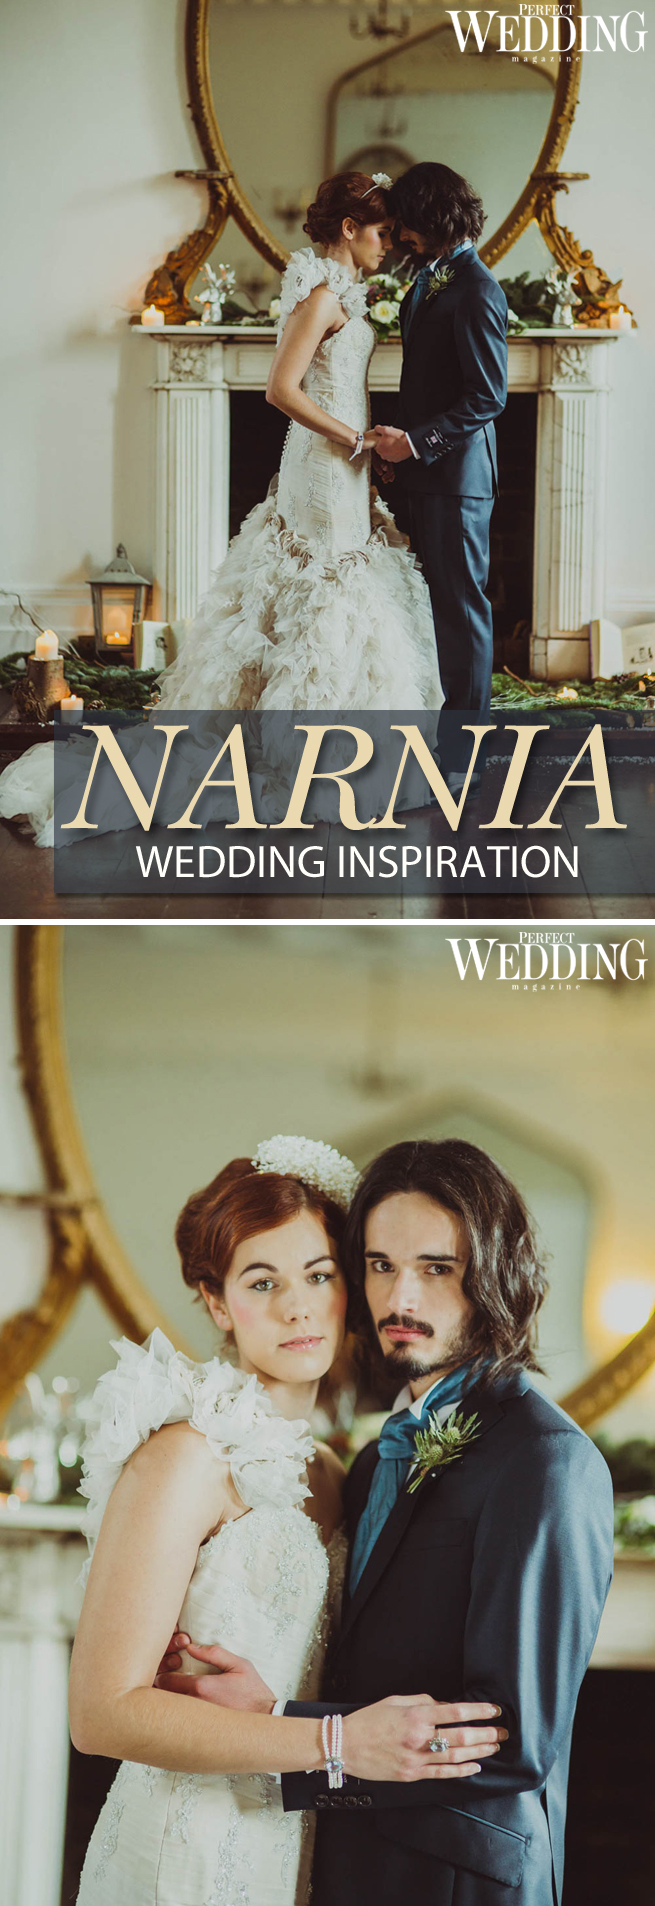 Wedding Style Shoot, Wedding Decor, Winter Wedding, Narnia, Narnia Wedding Inspiration, Perfect Wedding Magazine, Perfect wedding Blog, UK Weddings, Winter Wedding Decor, Tides Events